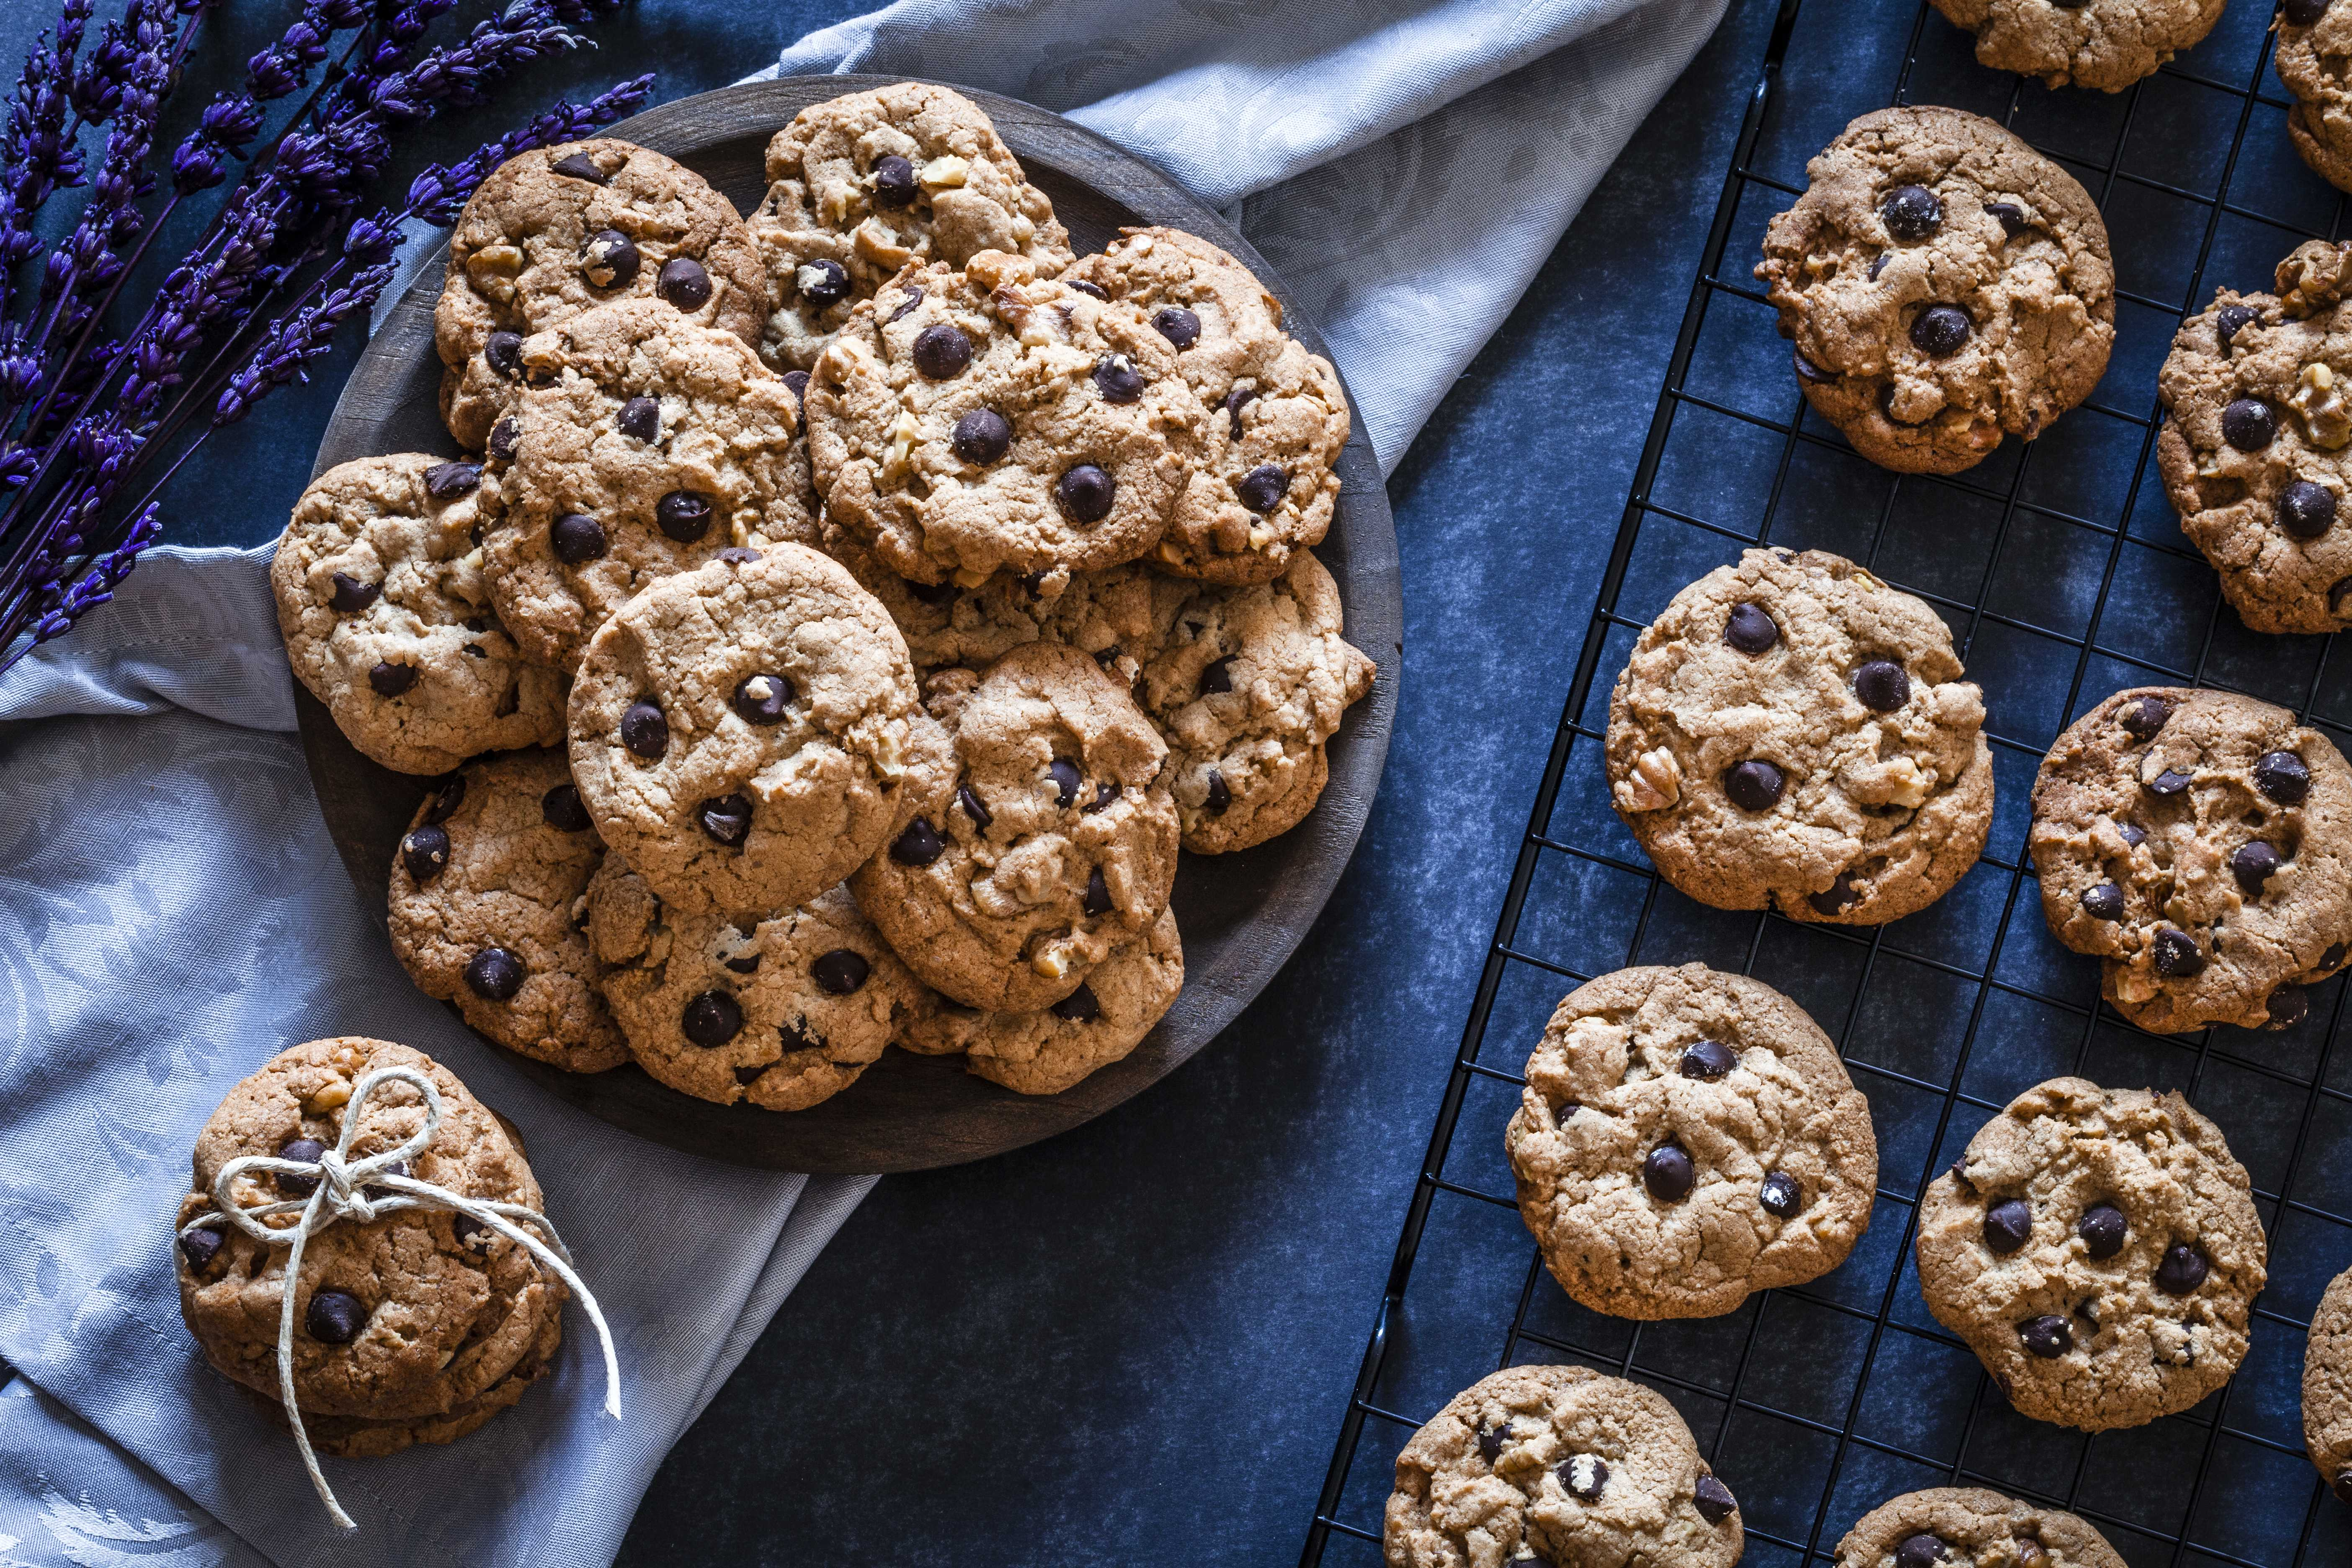 Mom's Blue Ribbon Chocolate Chip Cookies